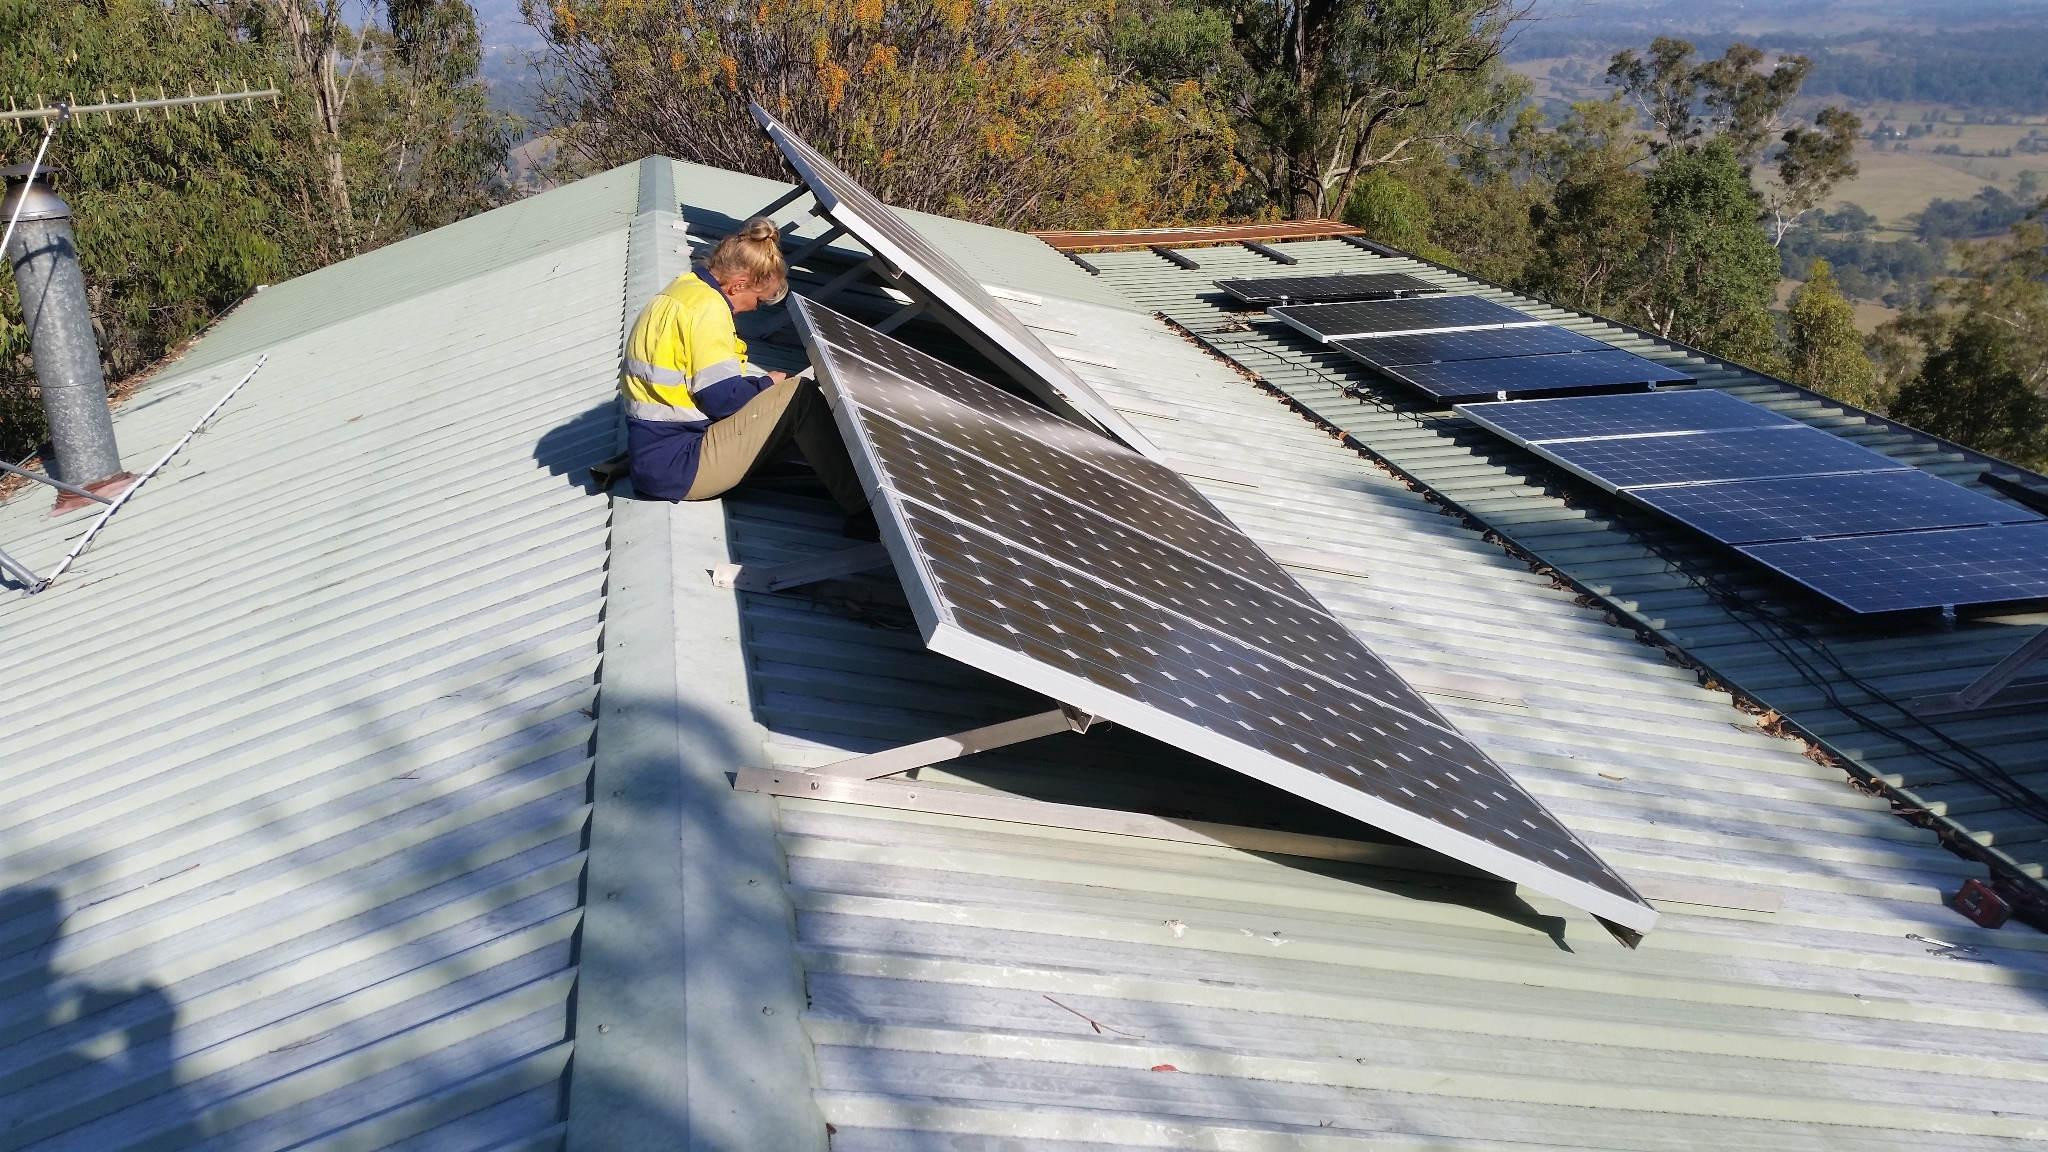 Adjusting the Solar Panels